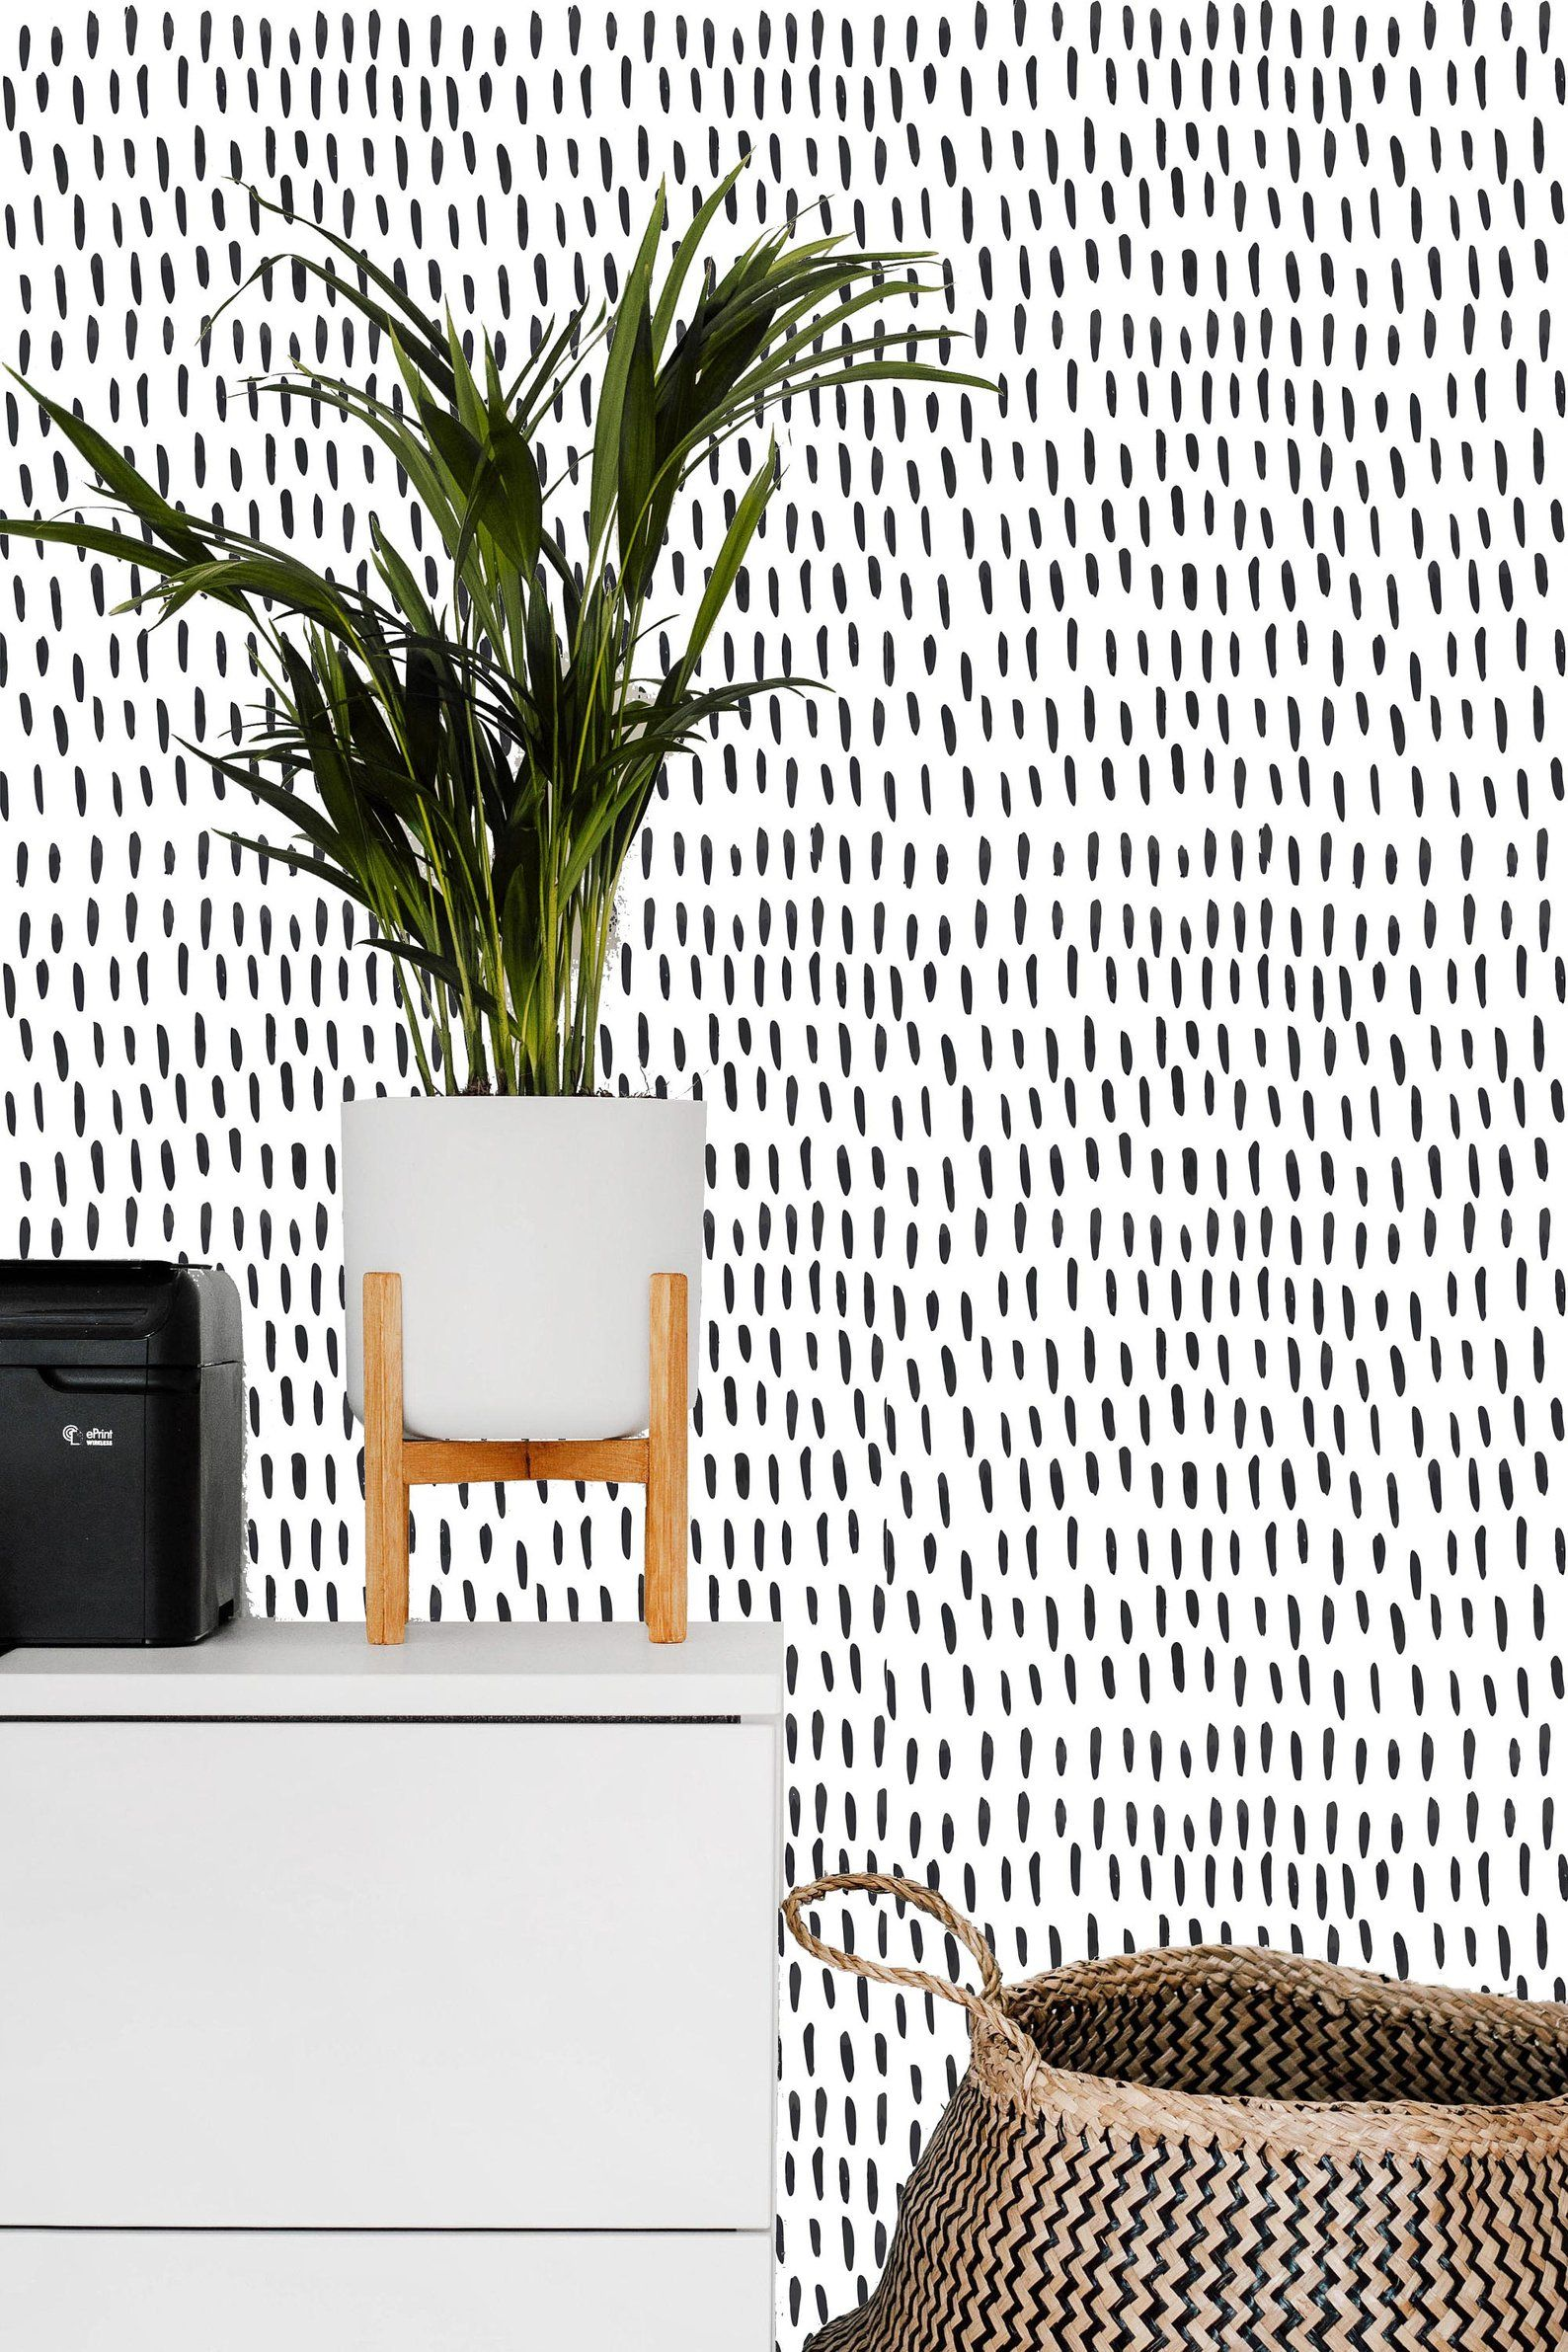 Removable Wallpaper Mural Peel Stick Self Adhesive Wallpaper Etsy Black And White Wallpaper Home Decor Wallpaper Accent Wall